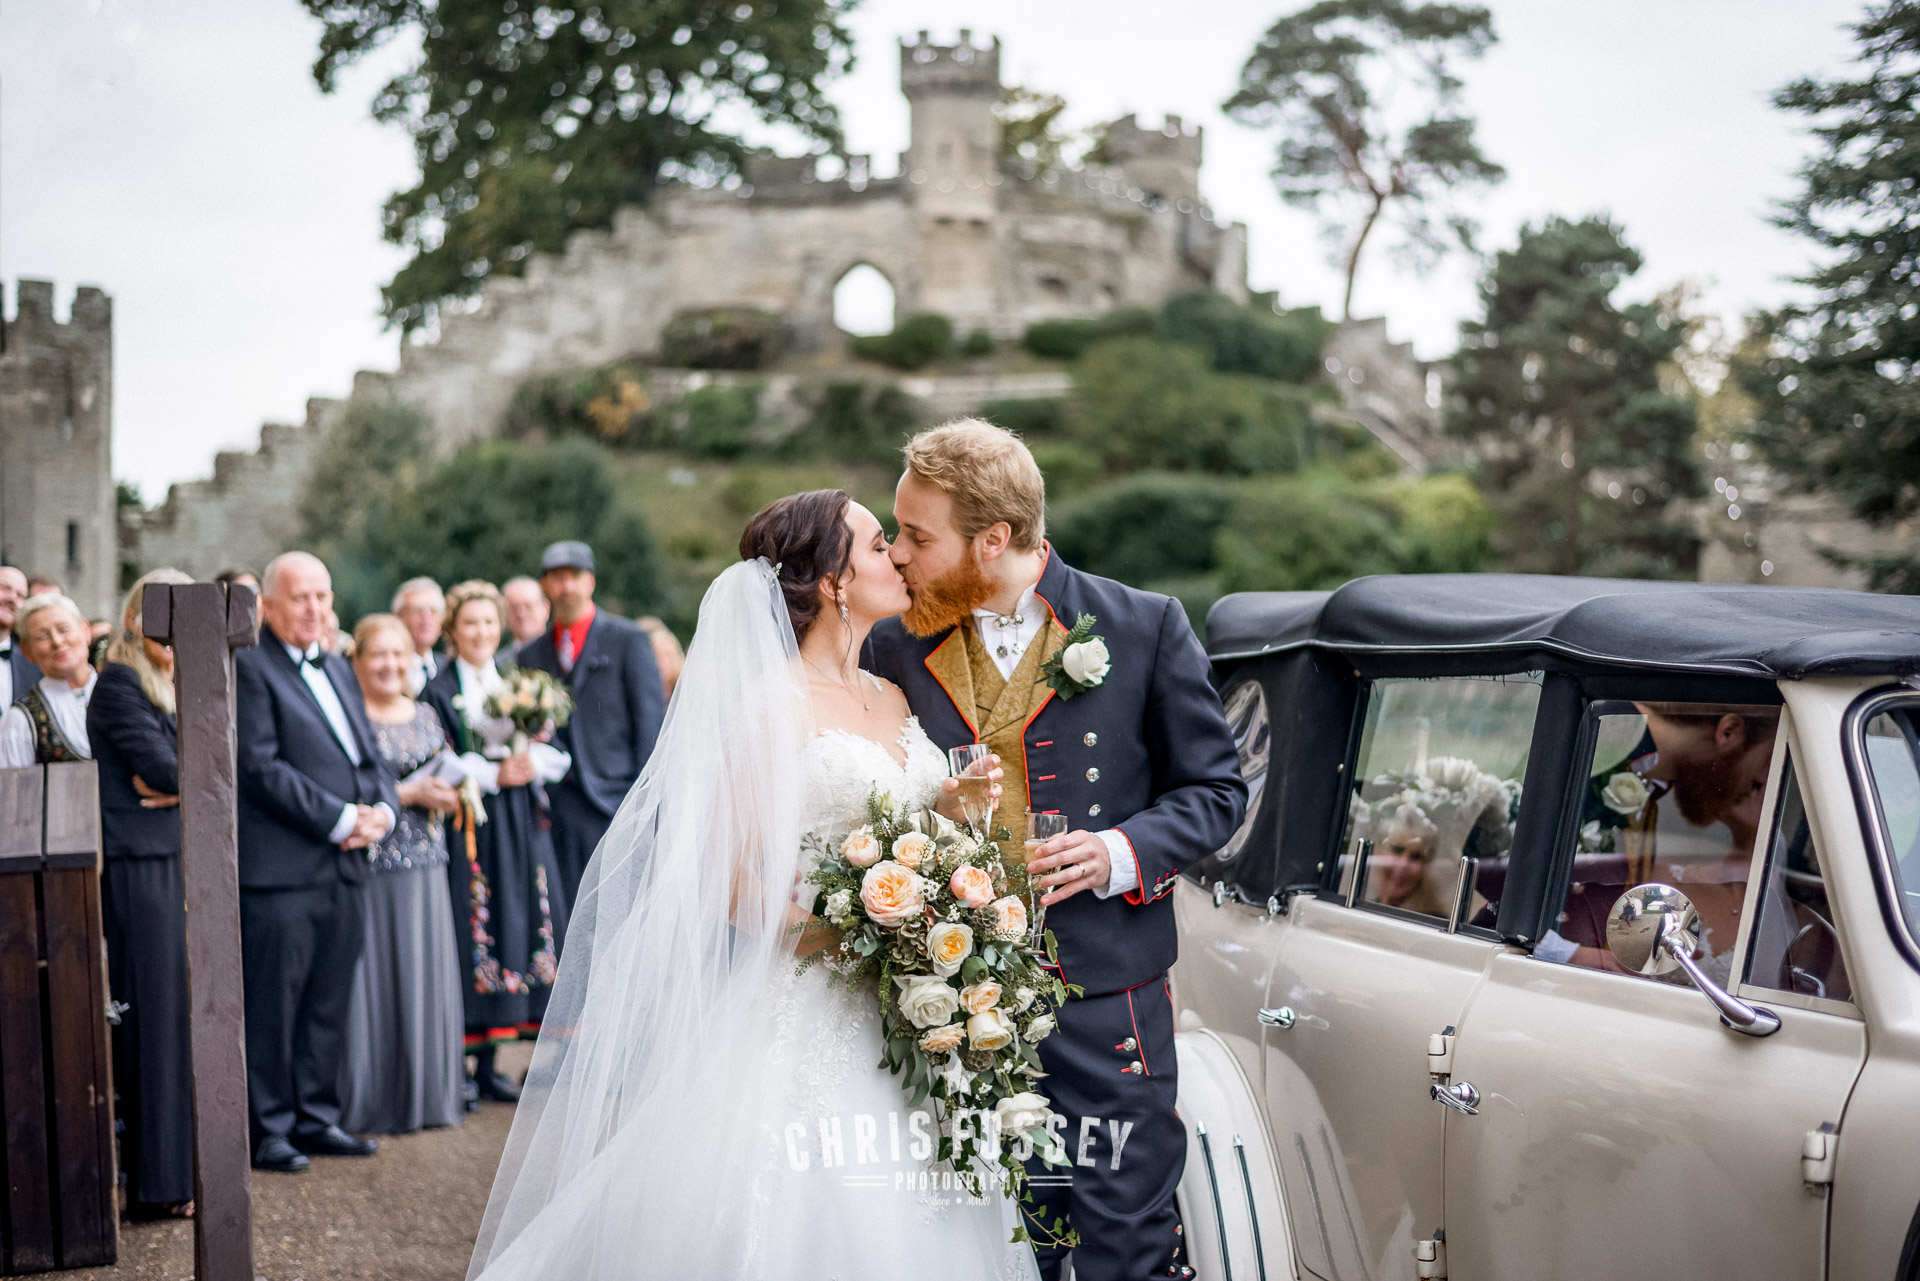 Warwickshire Wedding Photography Portfolio-Warwick Castle Wedding Photography by Chris Fossey (3)-134